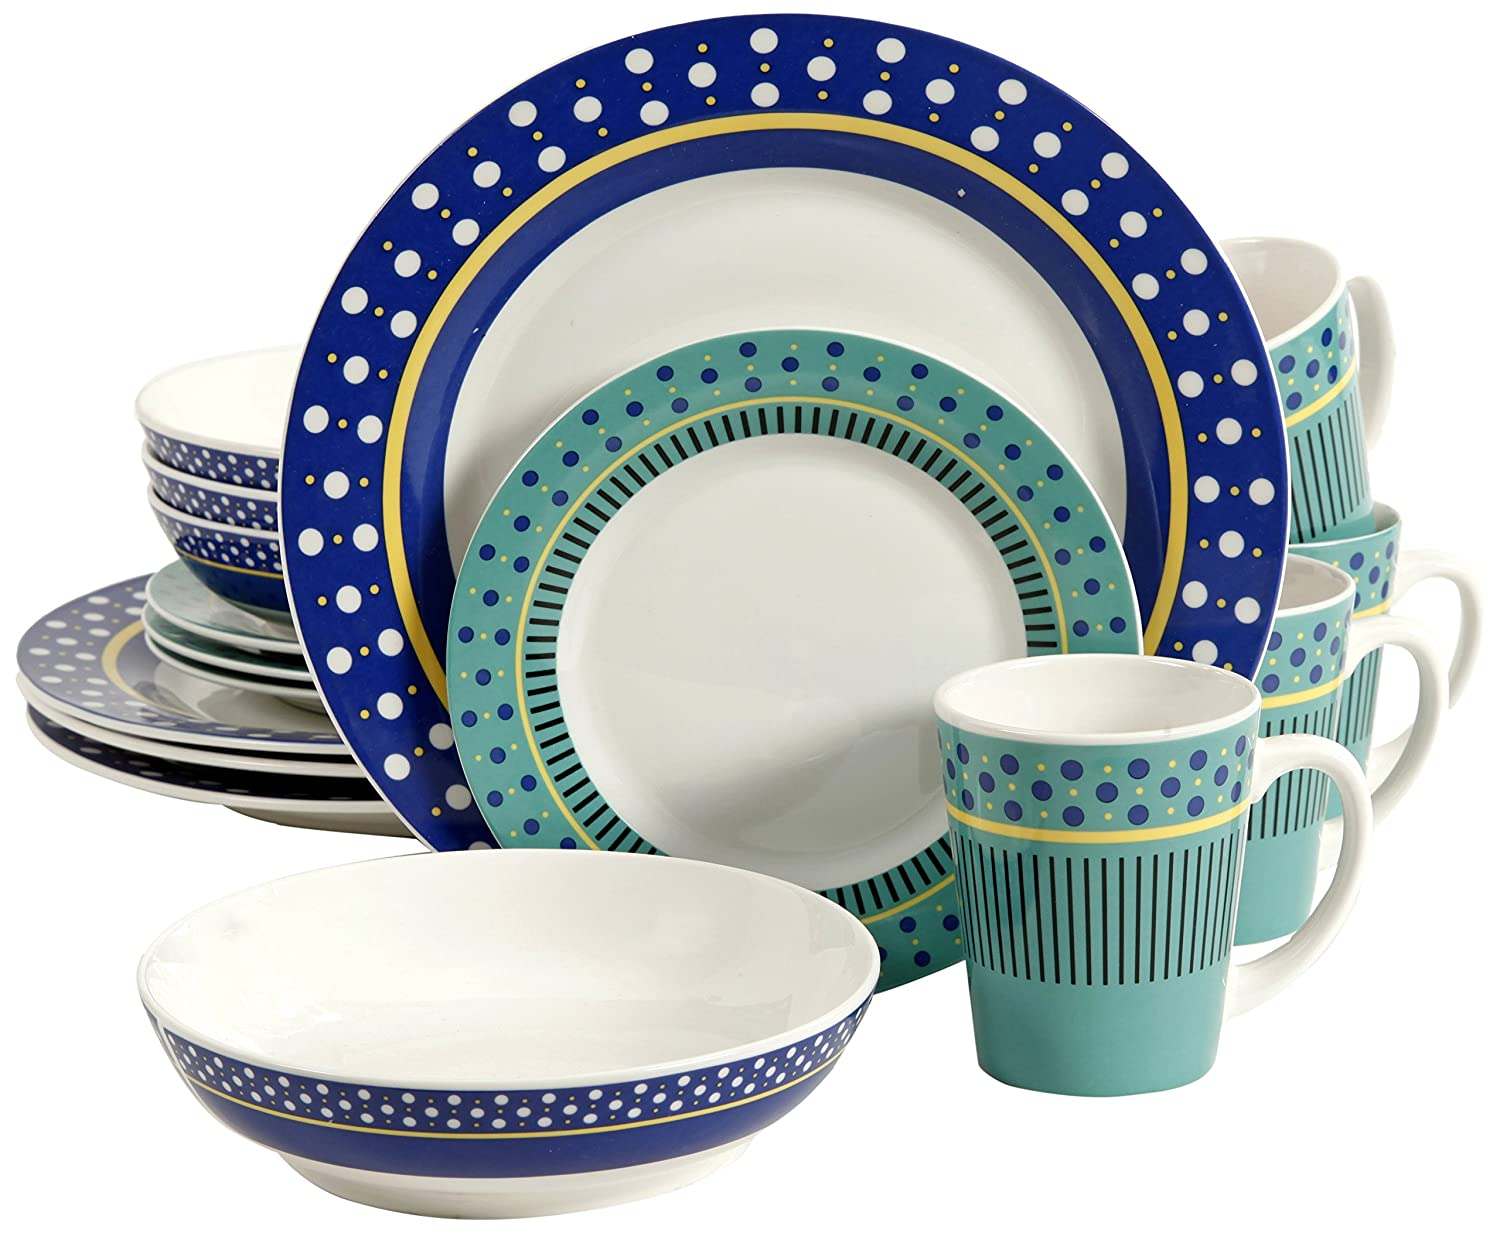 Amazon.com | Gibson 16 Piece Lockhart Dinnerware Set Blue/White Dinnerware Sets  sc 1 st  Amazon.com & Amazon.com | Gibson 16 Piece Lockhart Dinnerware Set Blue/White ...